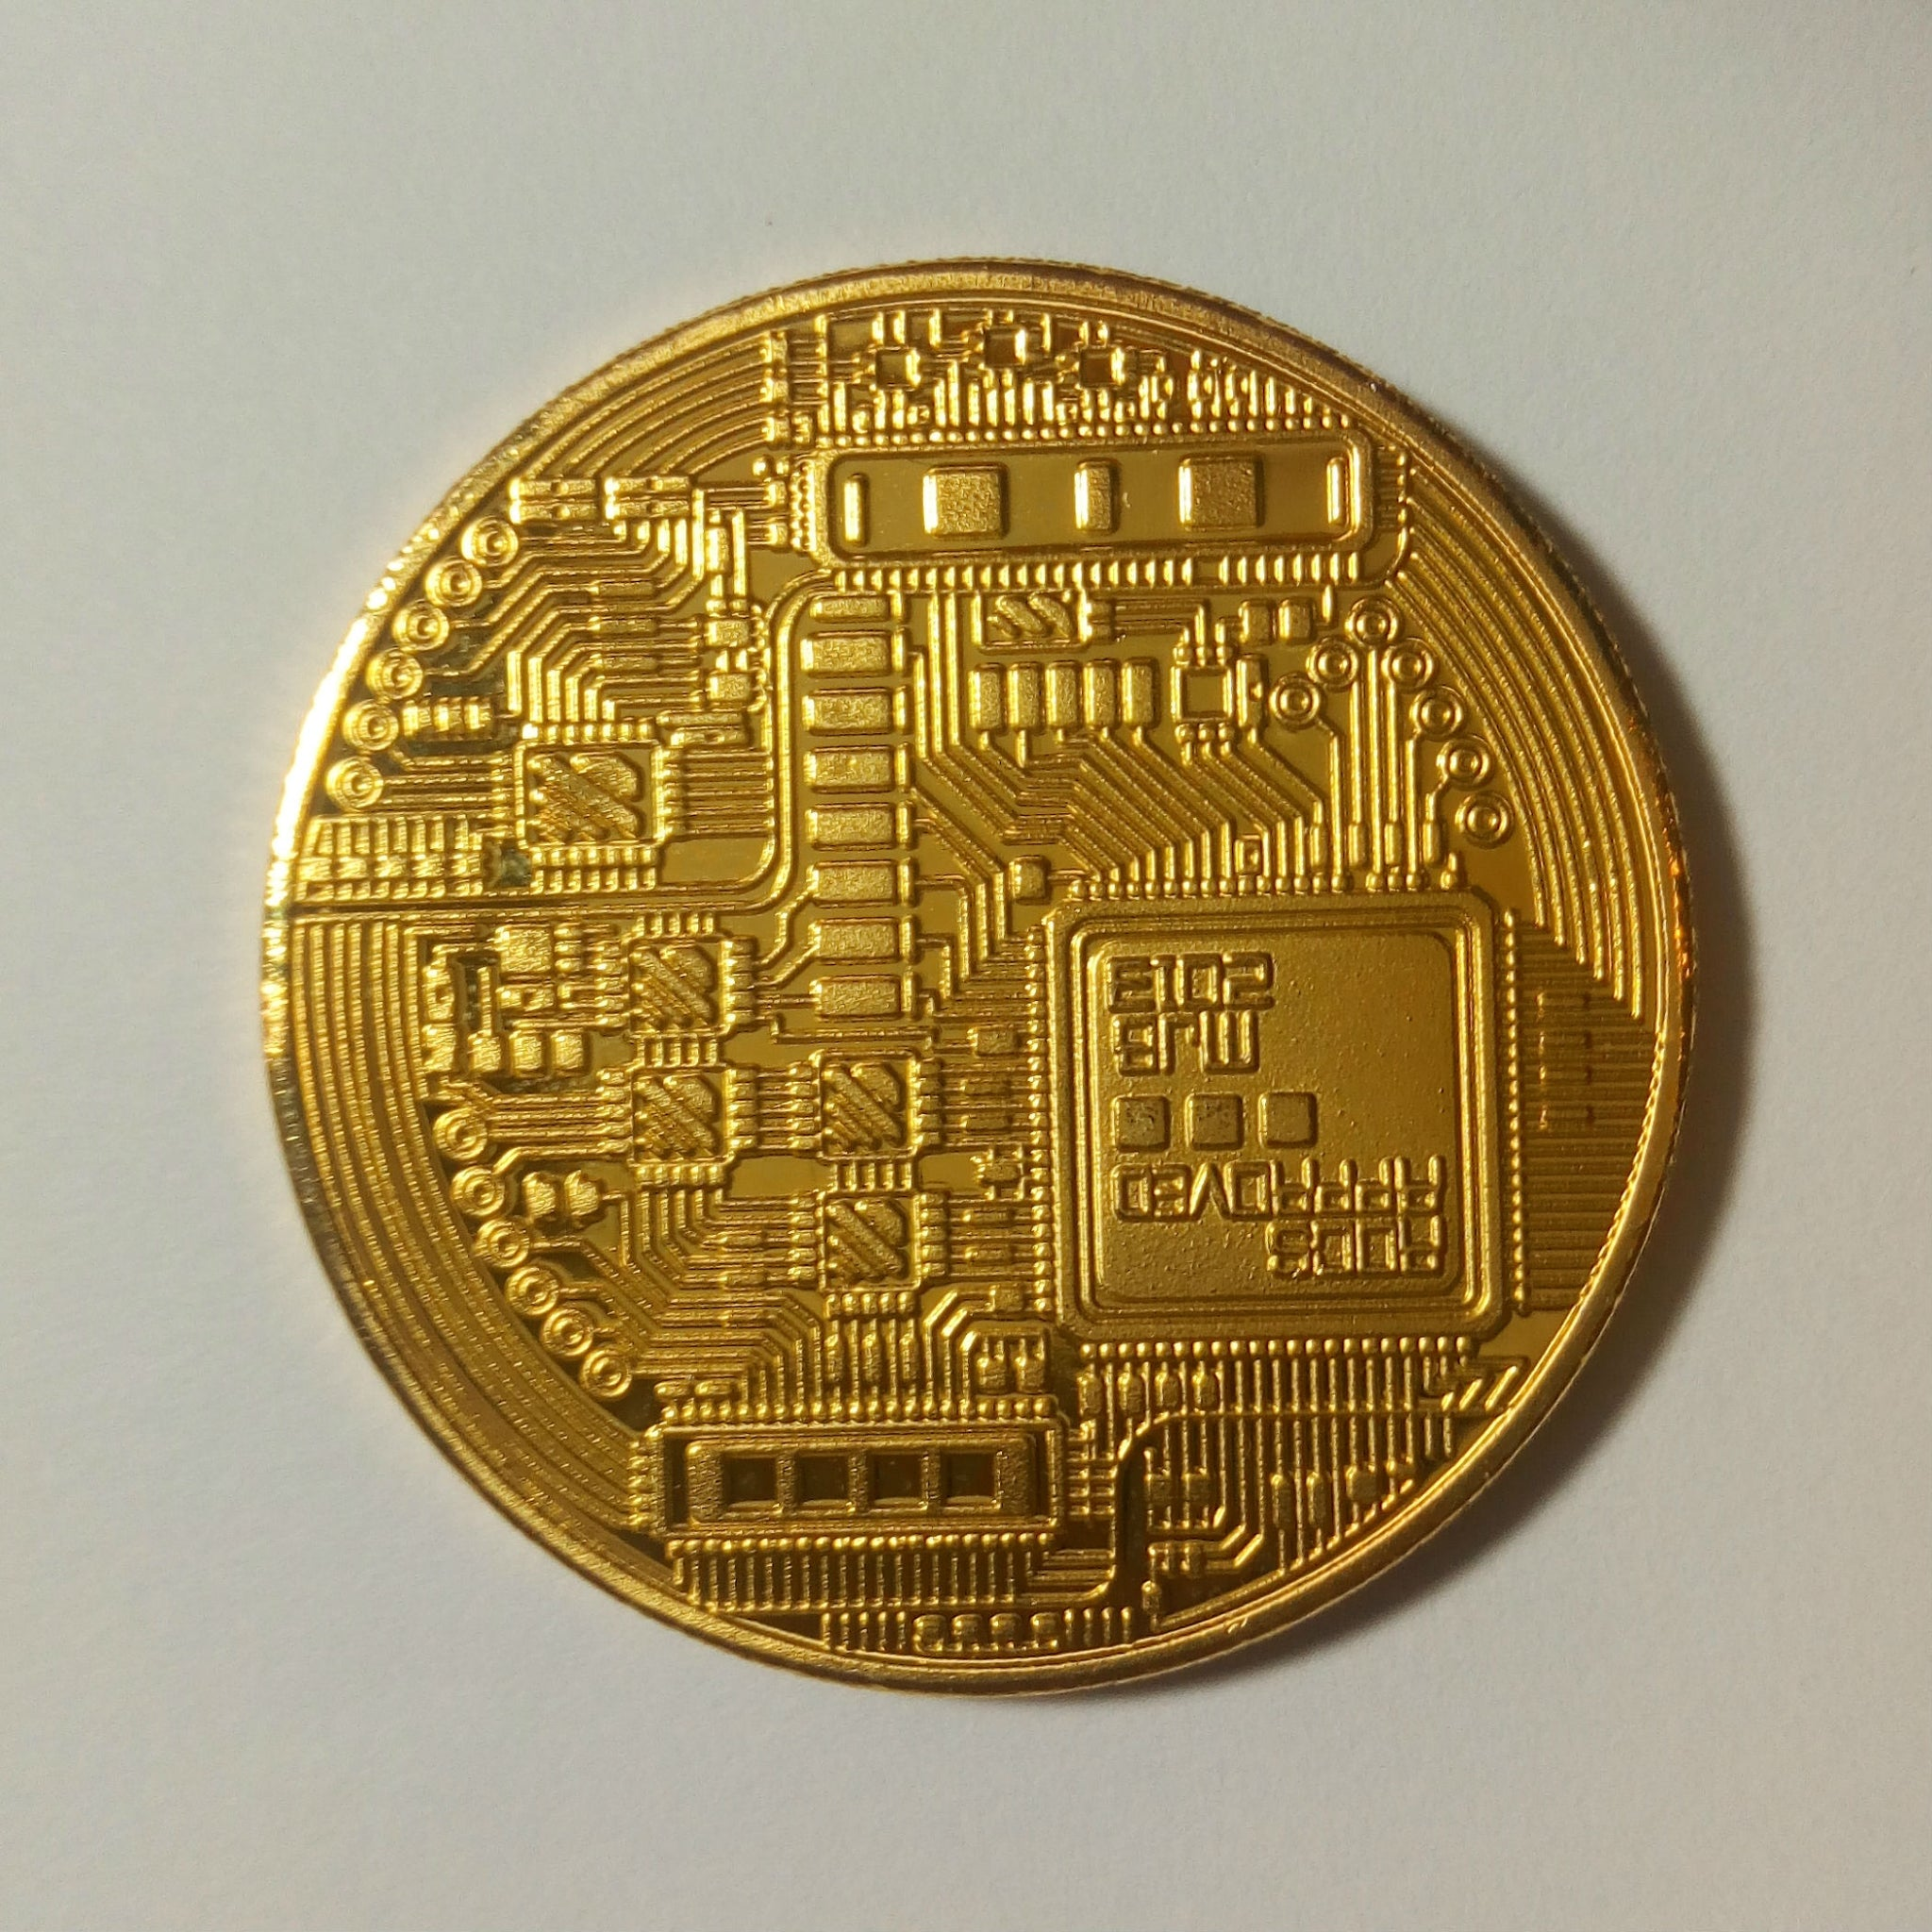 Physical Gold Bitcoin Coin